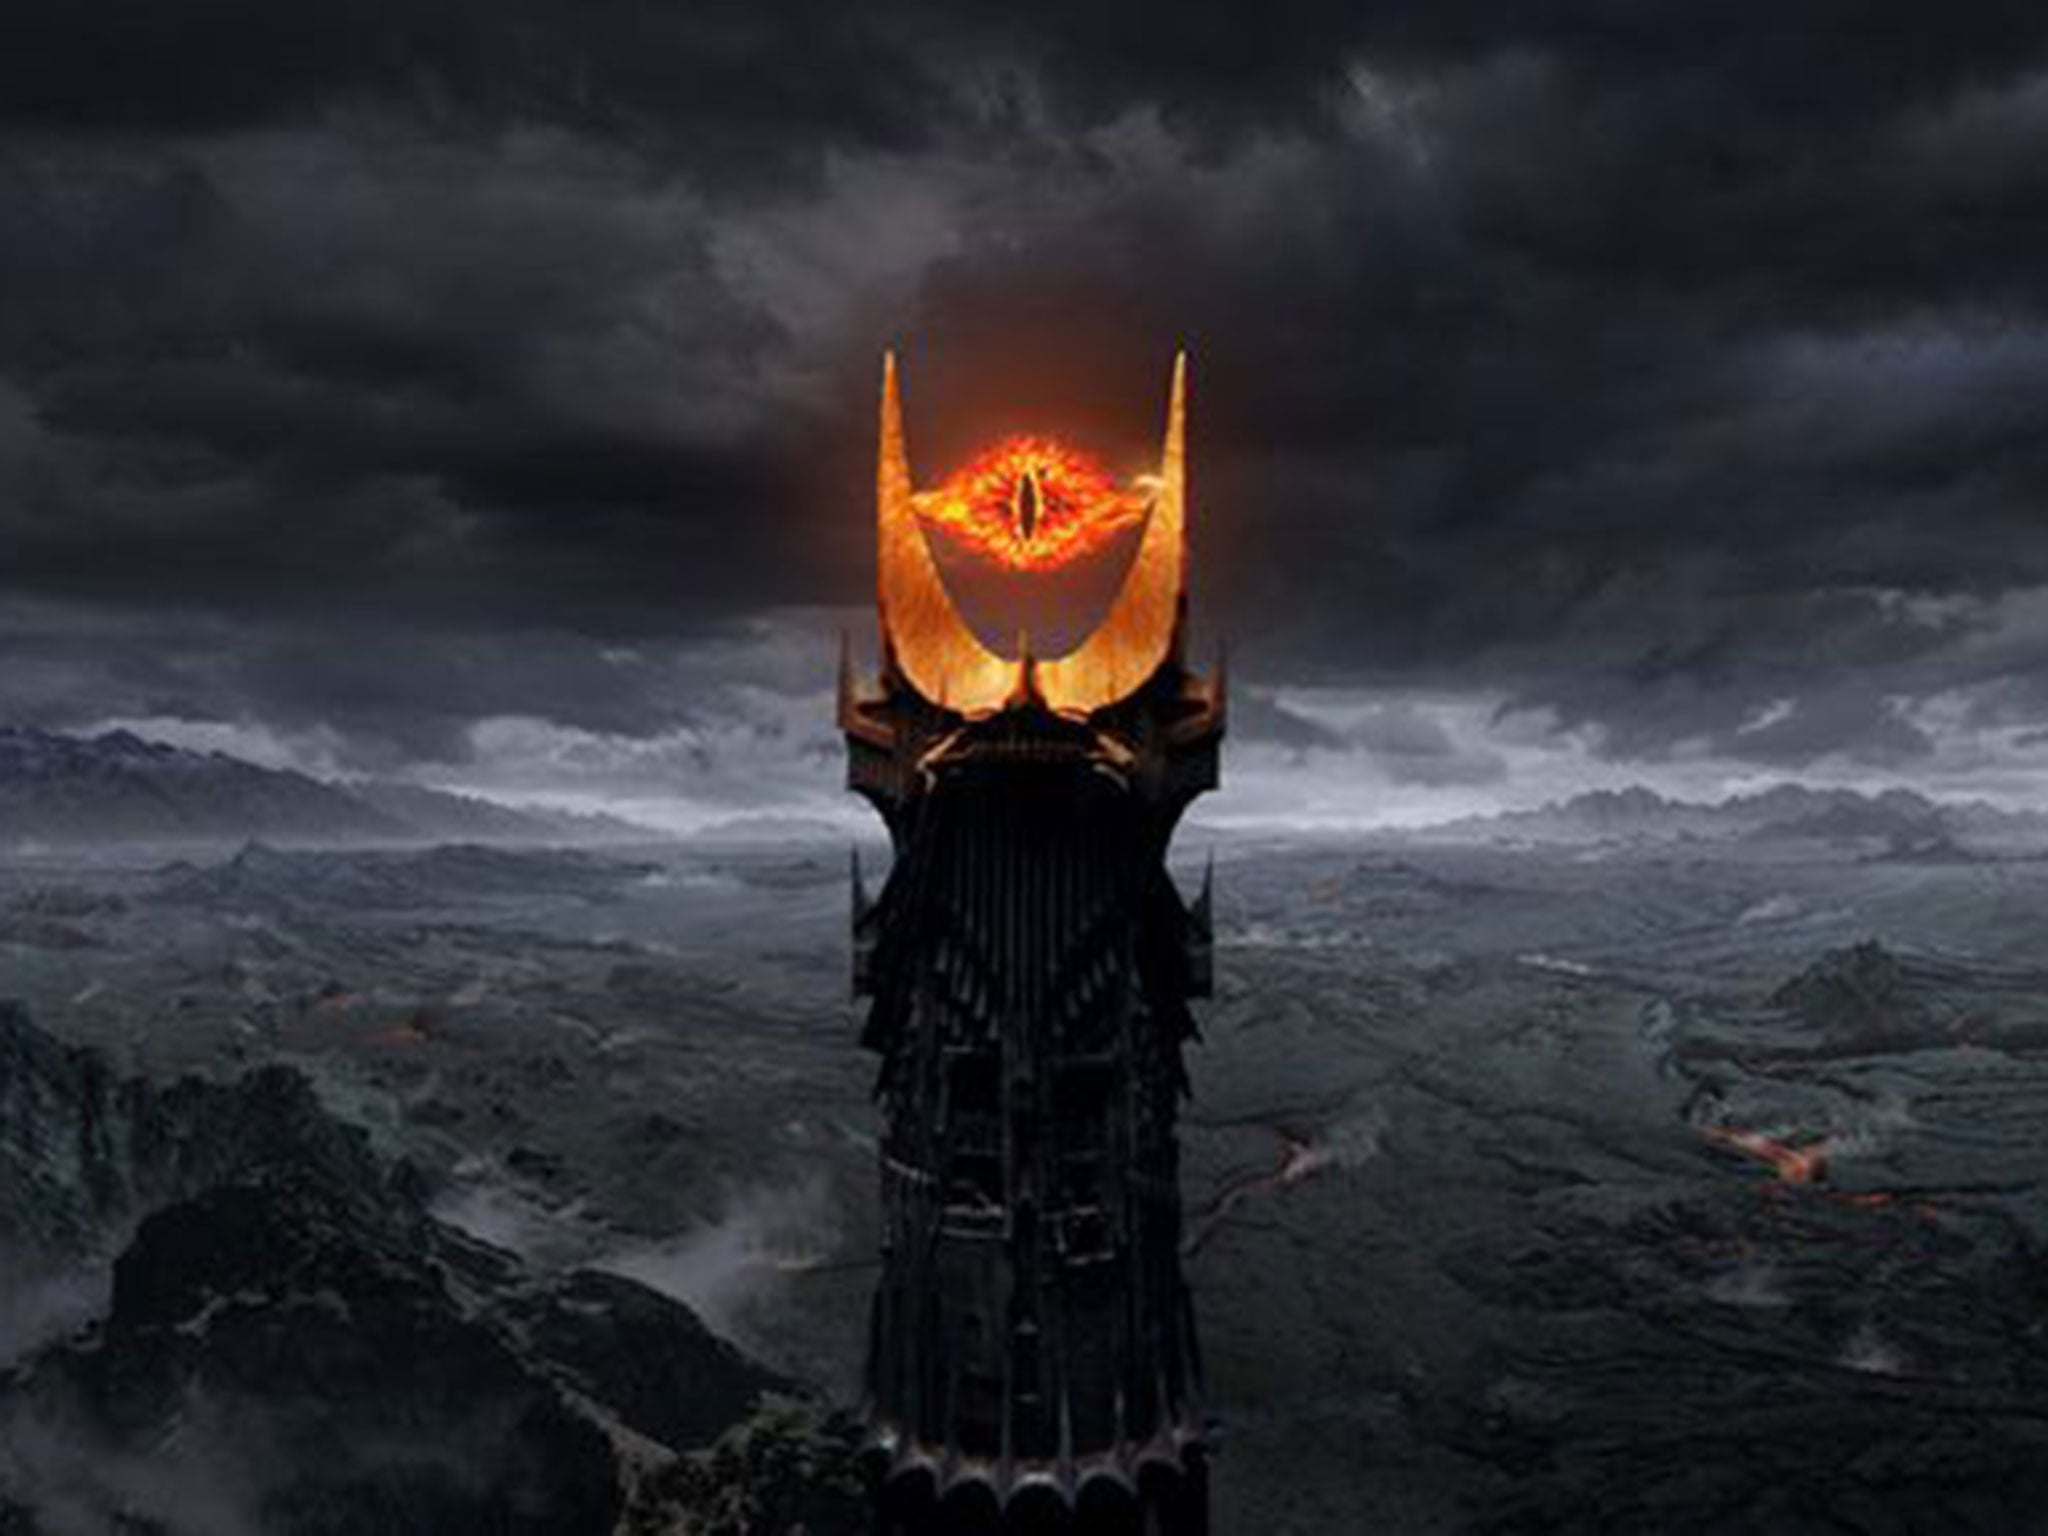 https://static.independent.co.uk/s3fs-public/thumbnails/image/2014/12/10/11/eyeofsauron.jpg